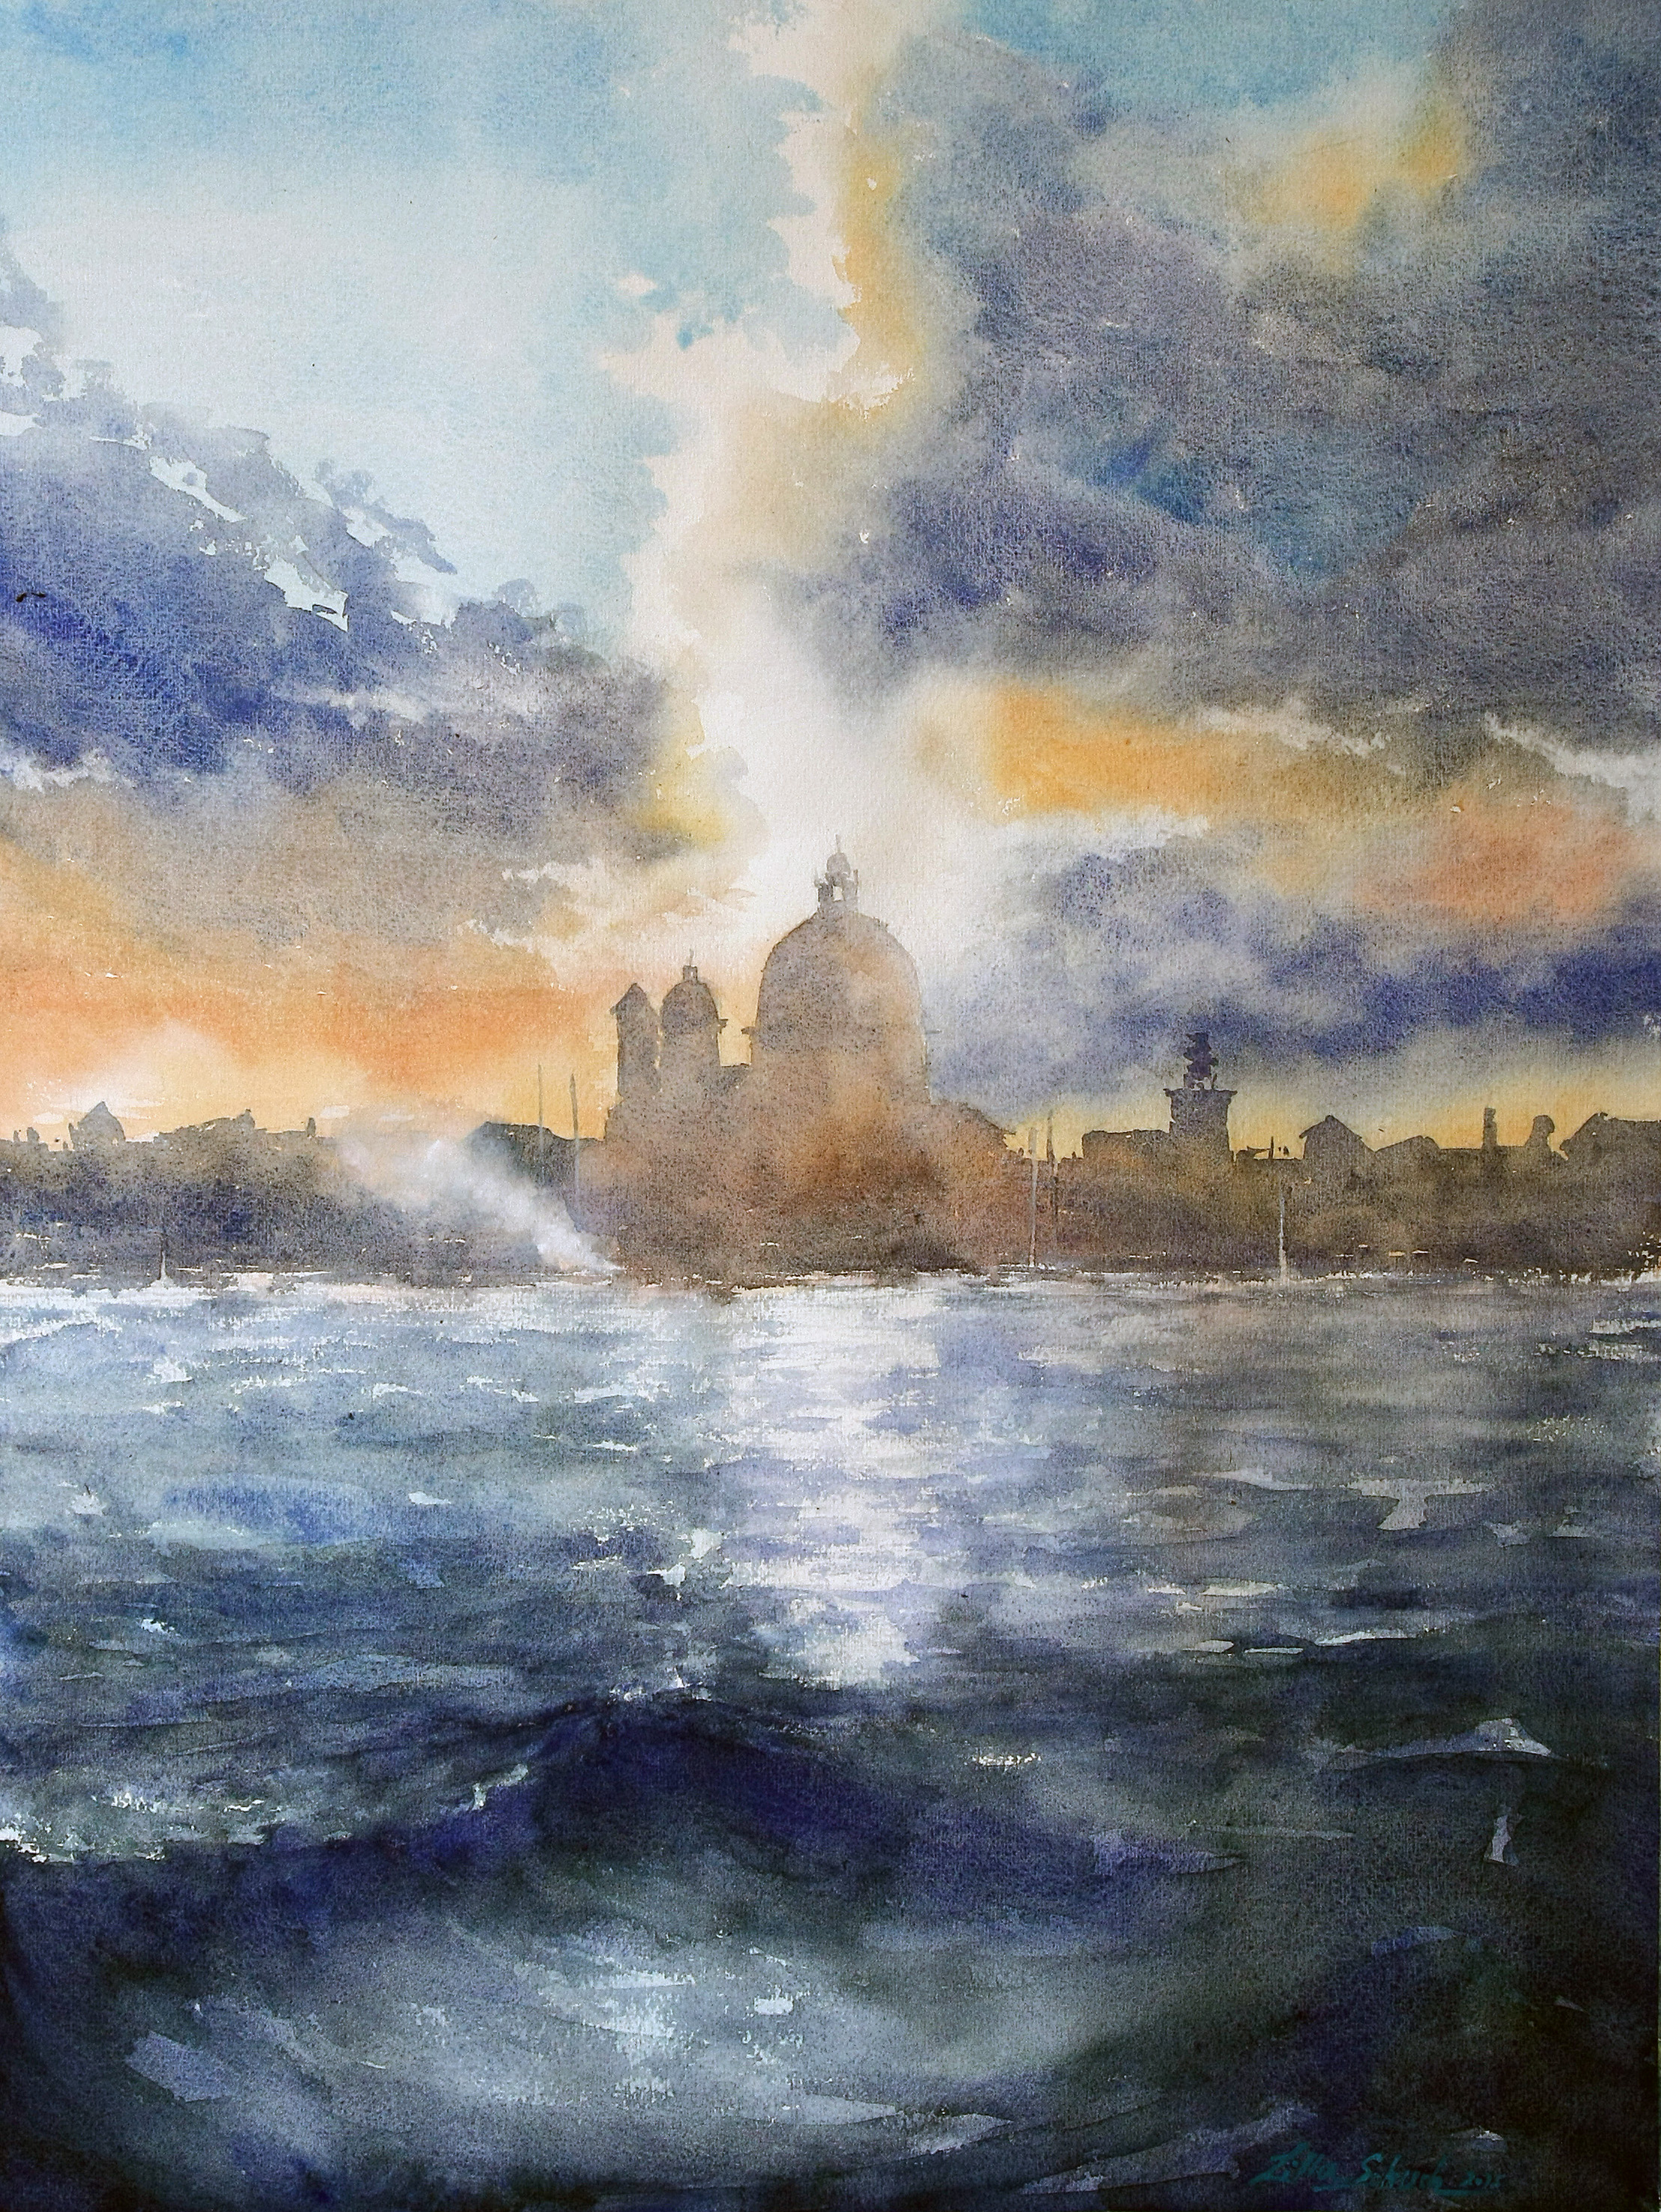 Venice - Watercolor paintings by Lilla Schuch